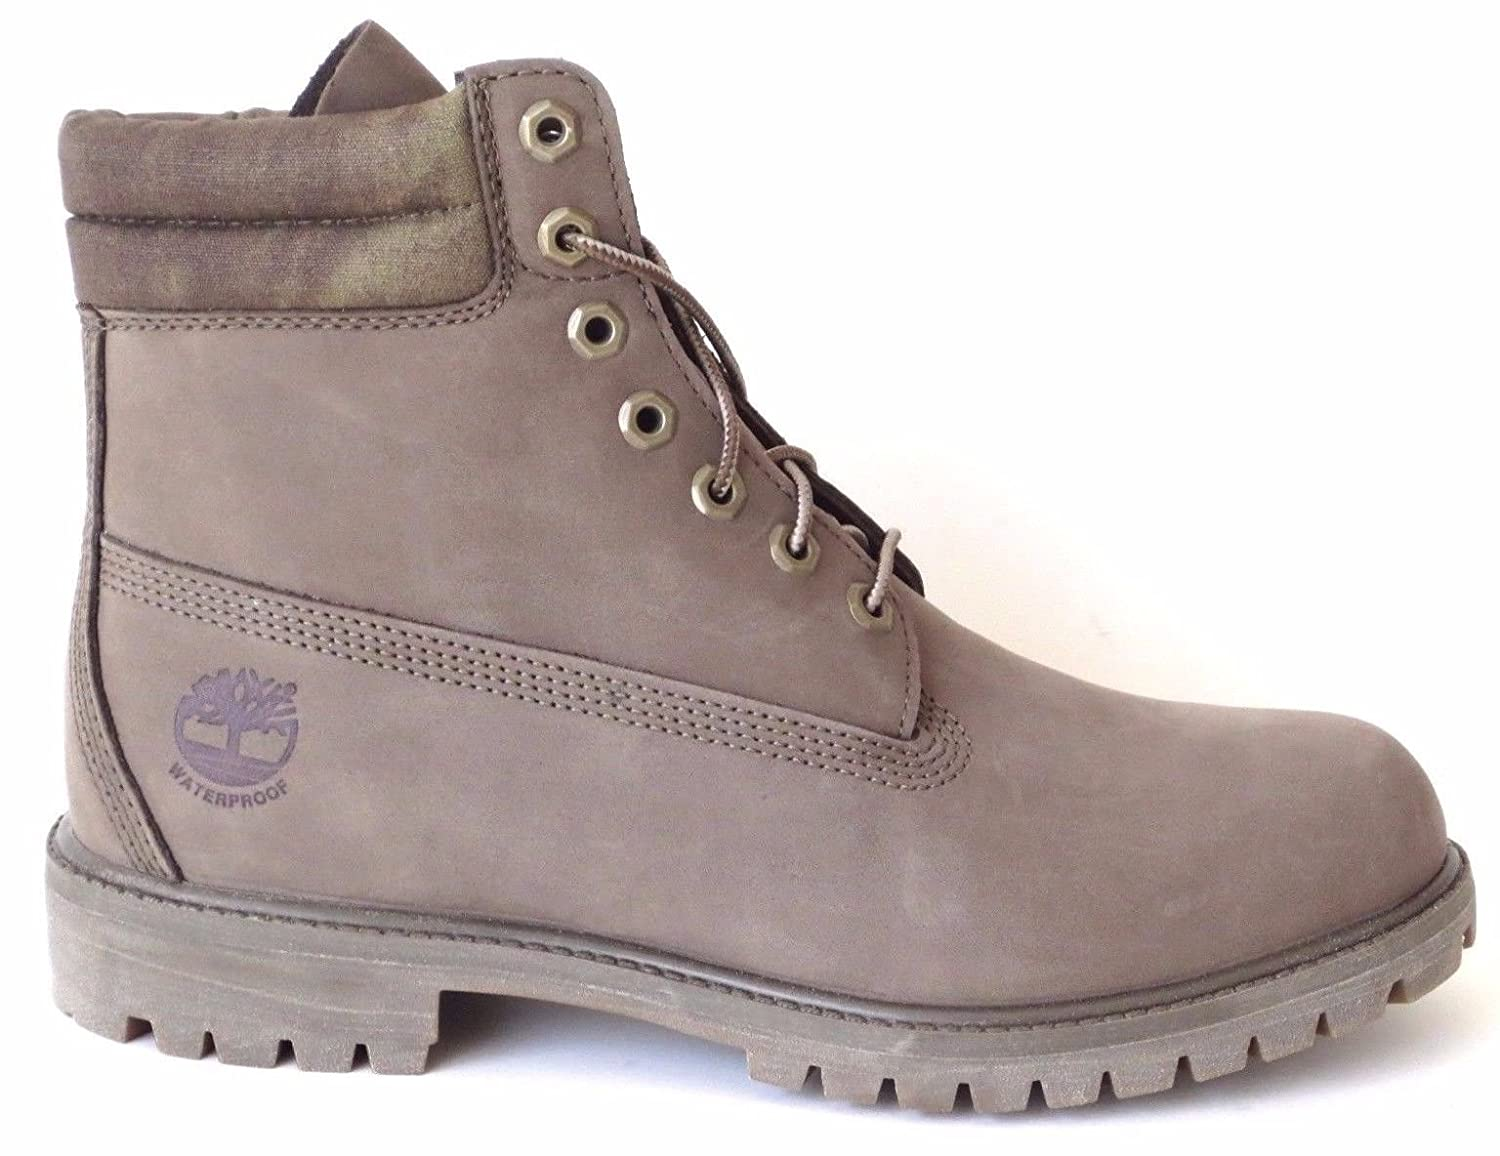 6 Inch Premium A18ZP Olive Waterproof Men's Hiking Boots